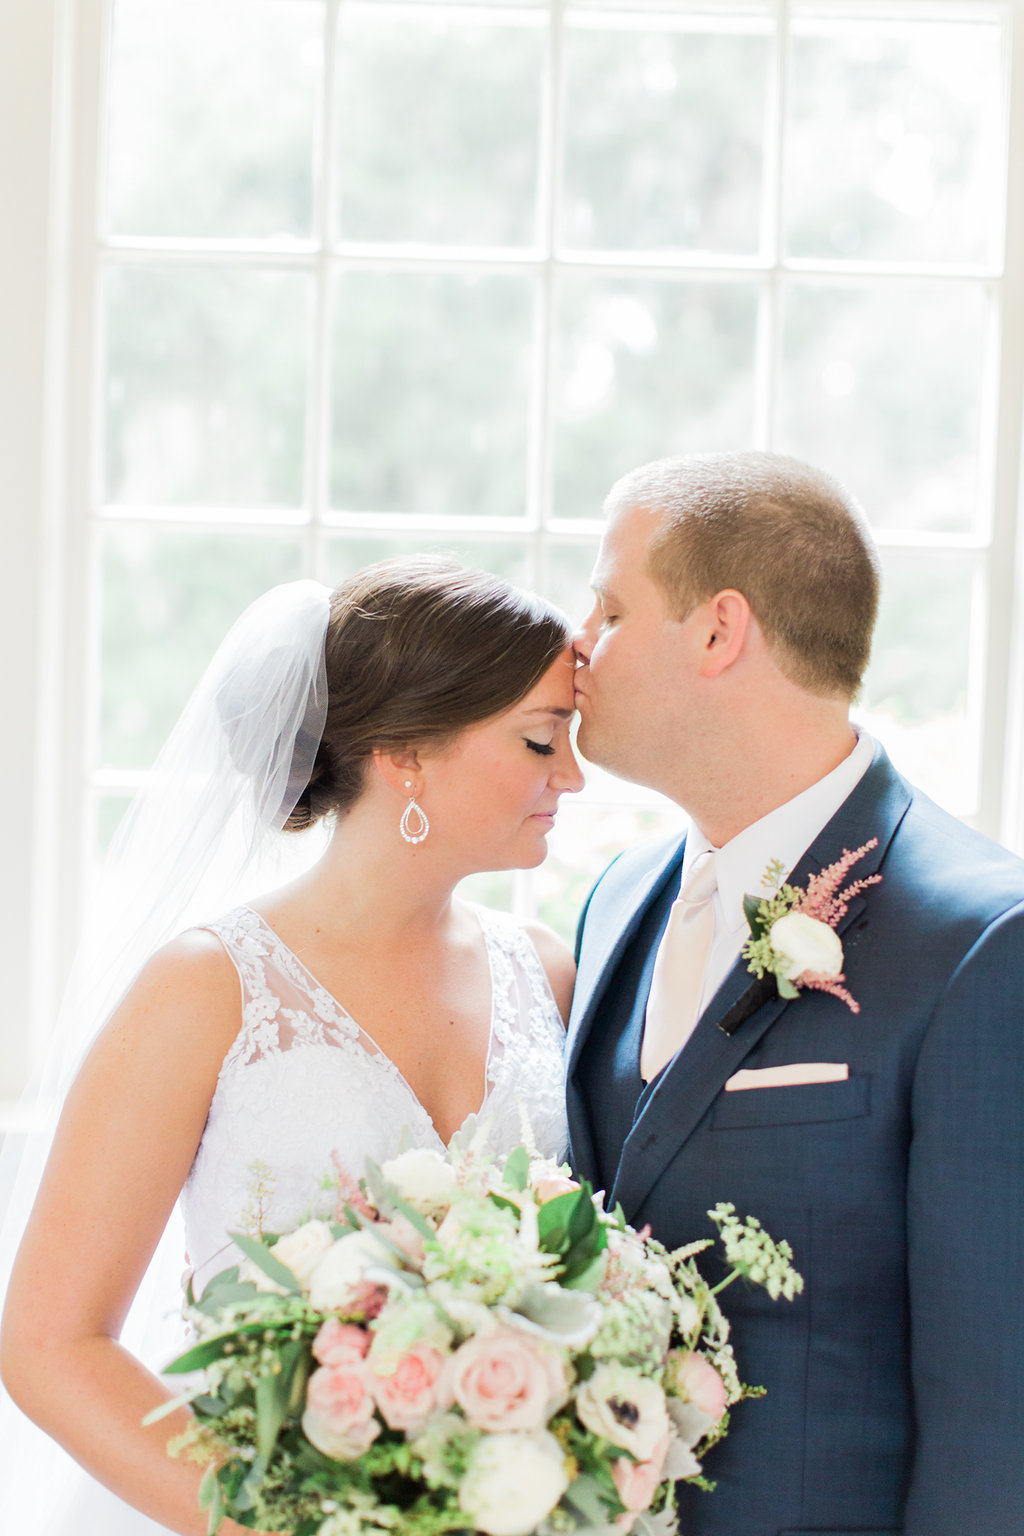 the-happy-bloom-photography-ivory-and-beau-wedding-planning-ivory-and-beau-bridal-boutique-whitfield-chapel-wedding-10-downing-wedding-savannah-wedding-historic-savannah-wedding-savannah-wedding-planner-savannah-weddings-a-to-zinnias-25.jpg